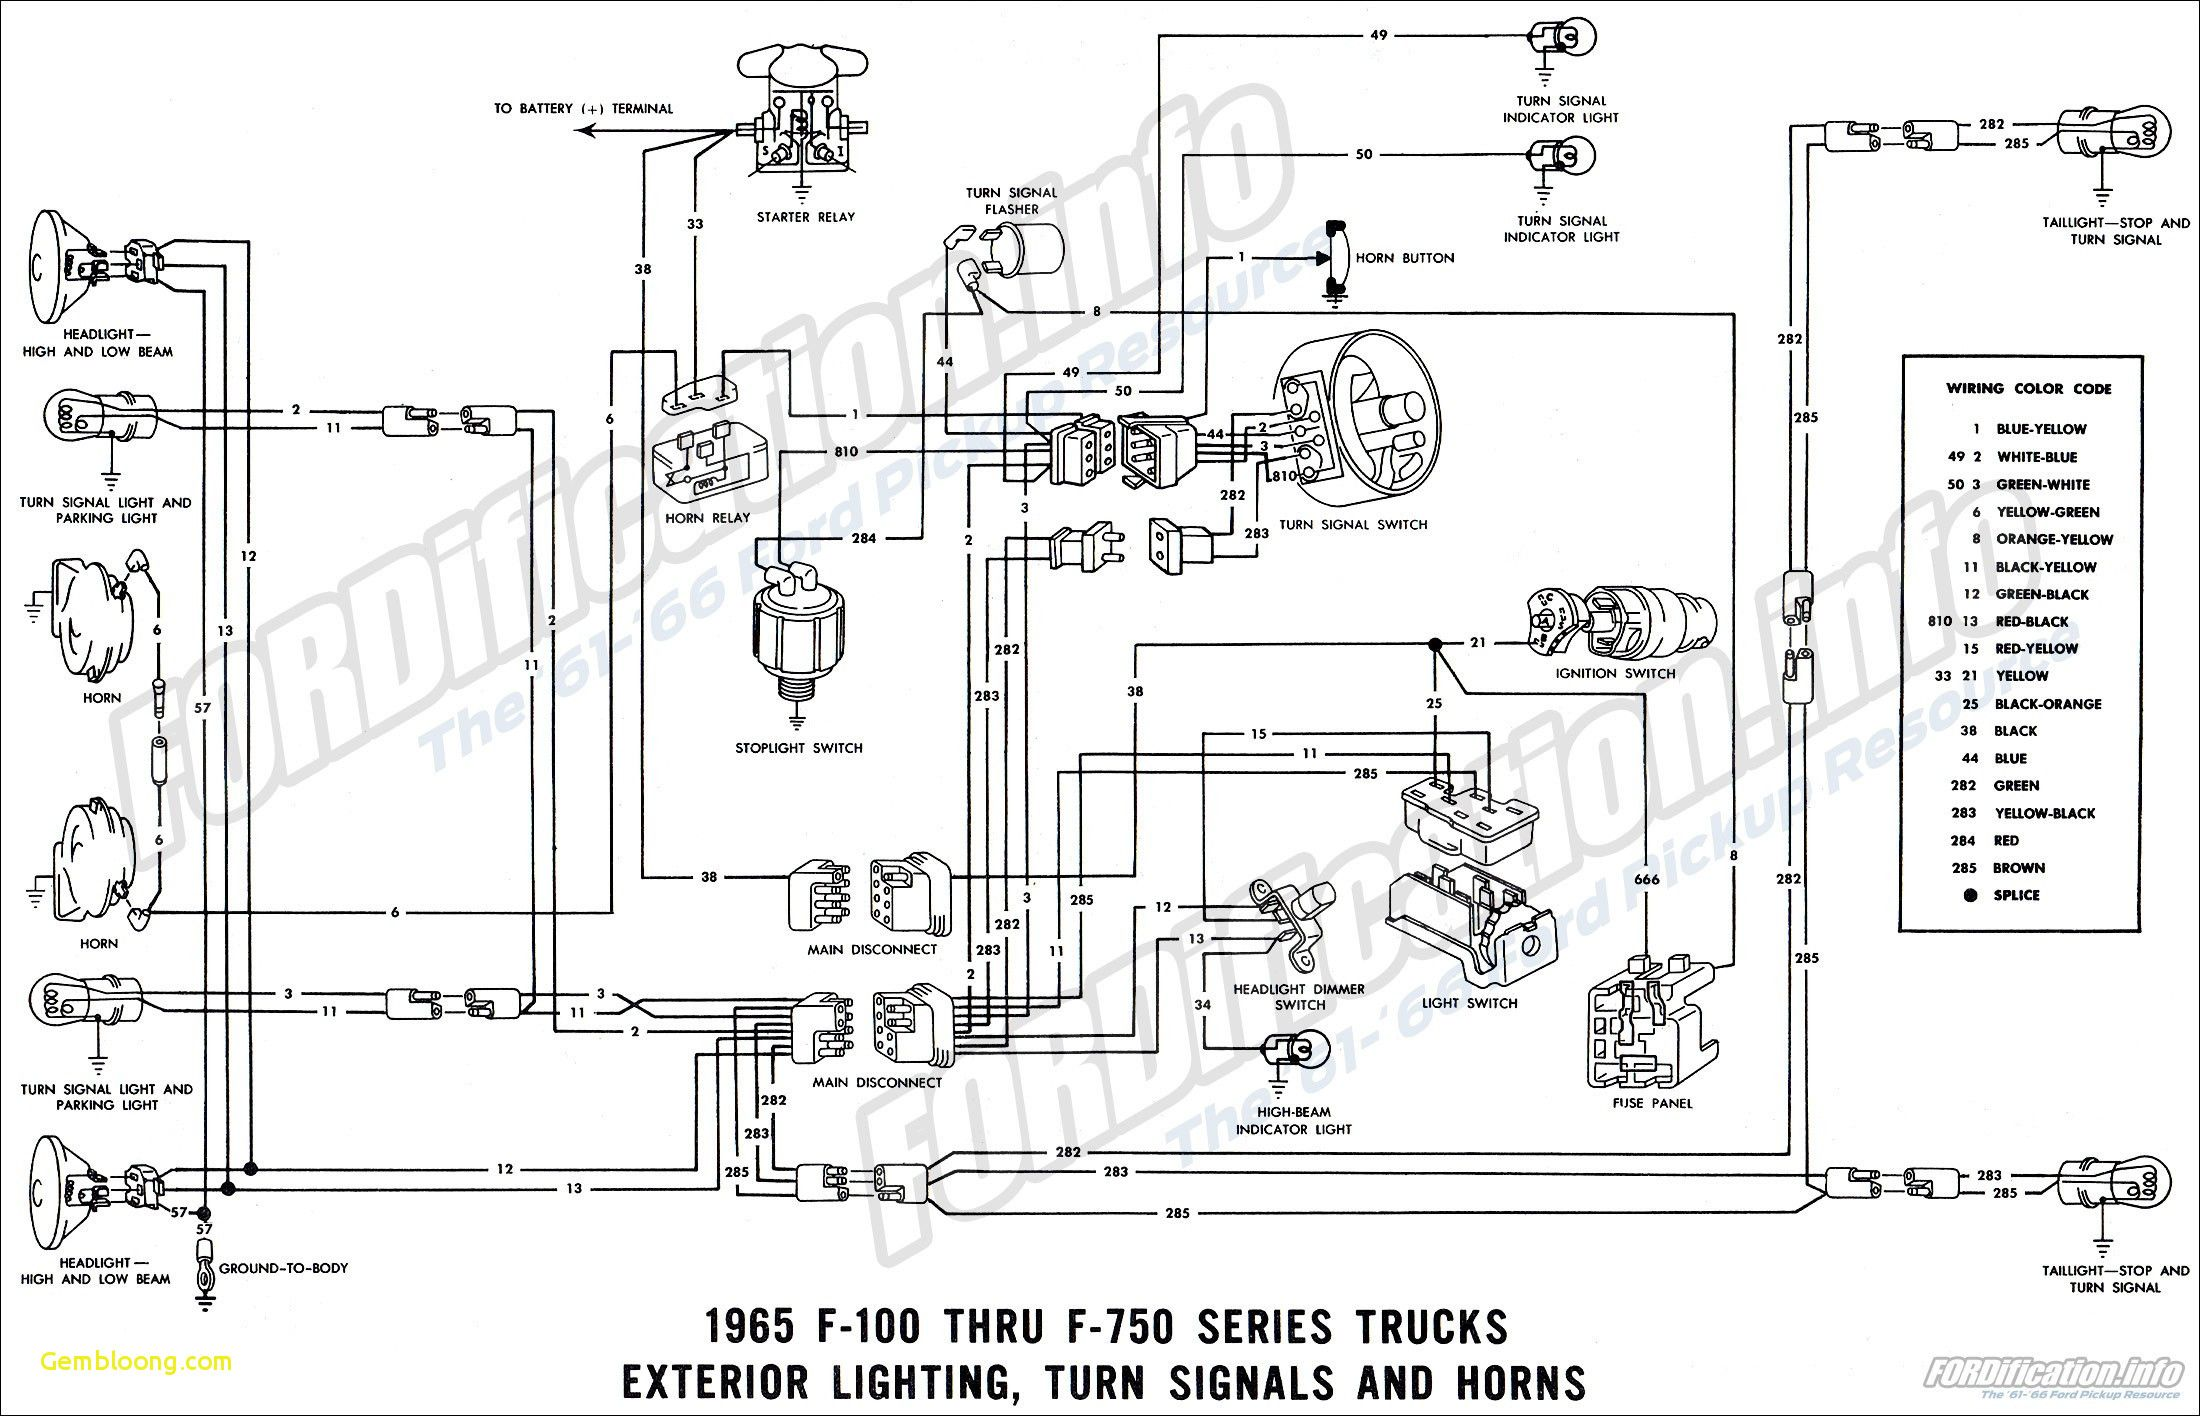 21 Ford Harness Wiring Diagram - bookingritzcarlton.info in 2020 | Diagram,  Alternator, Ford Pinterest